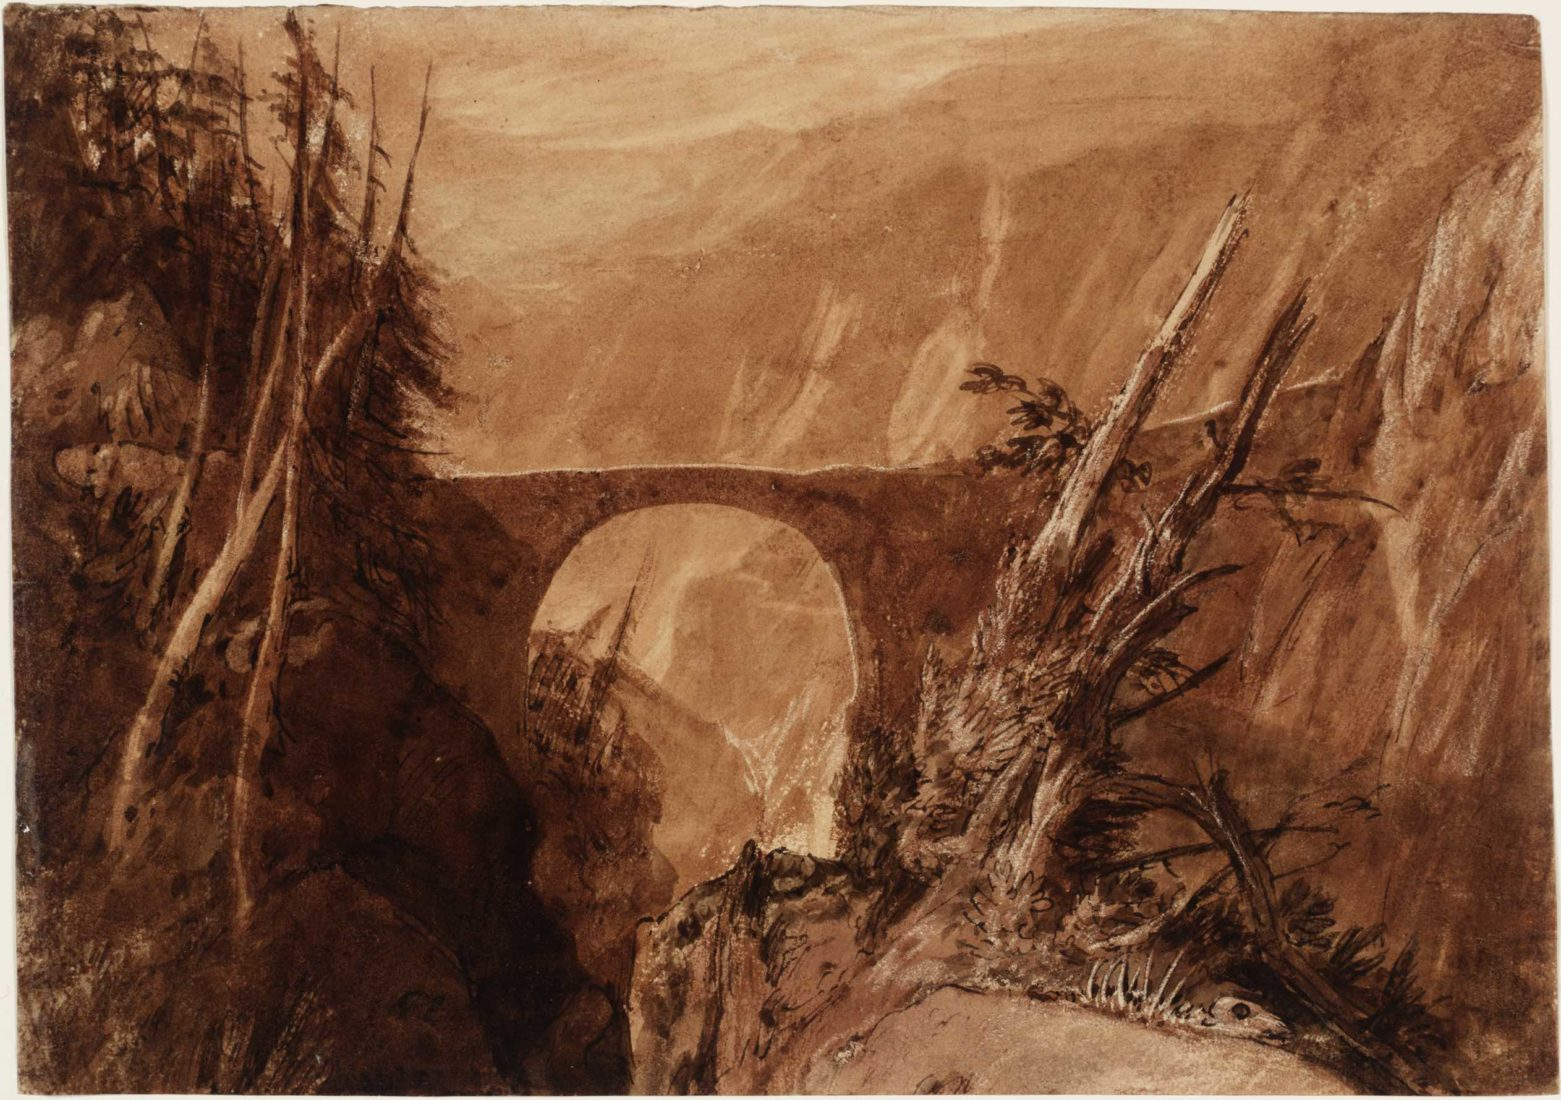 William Turner, Little Devil's Bridge